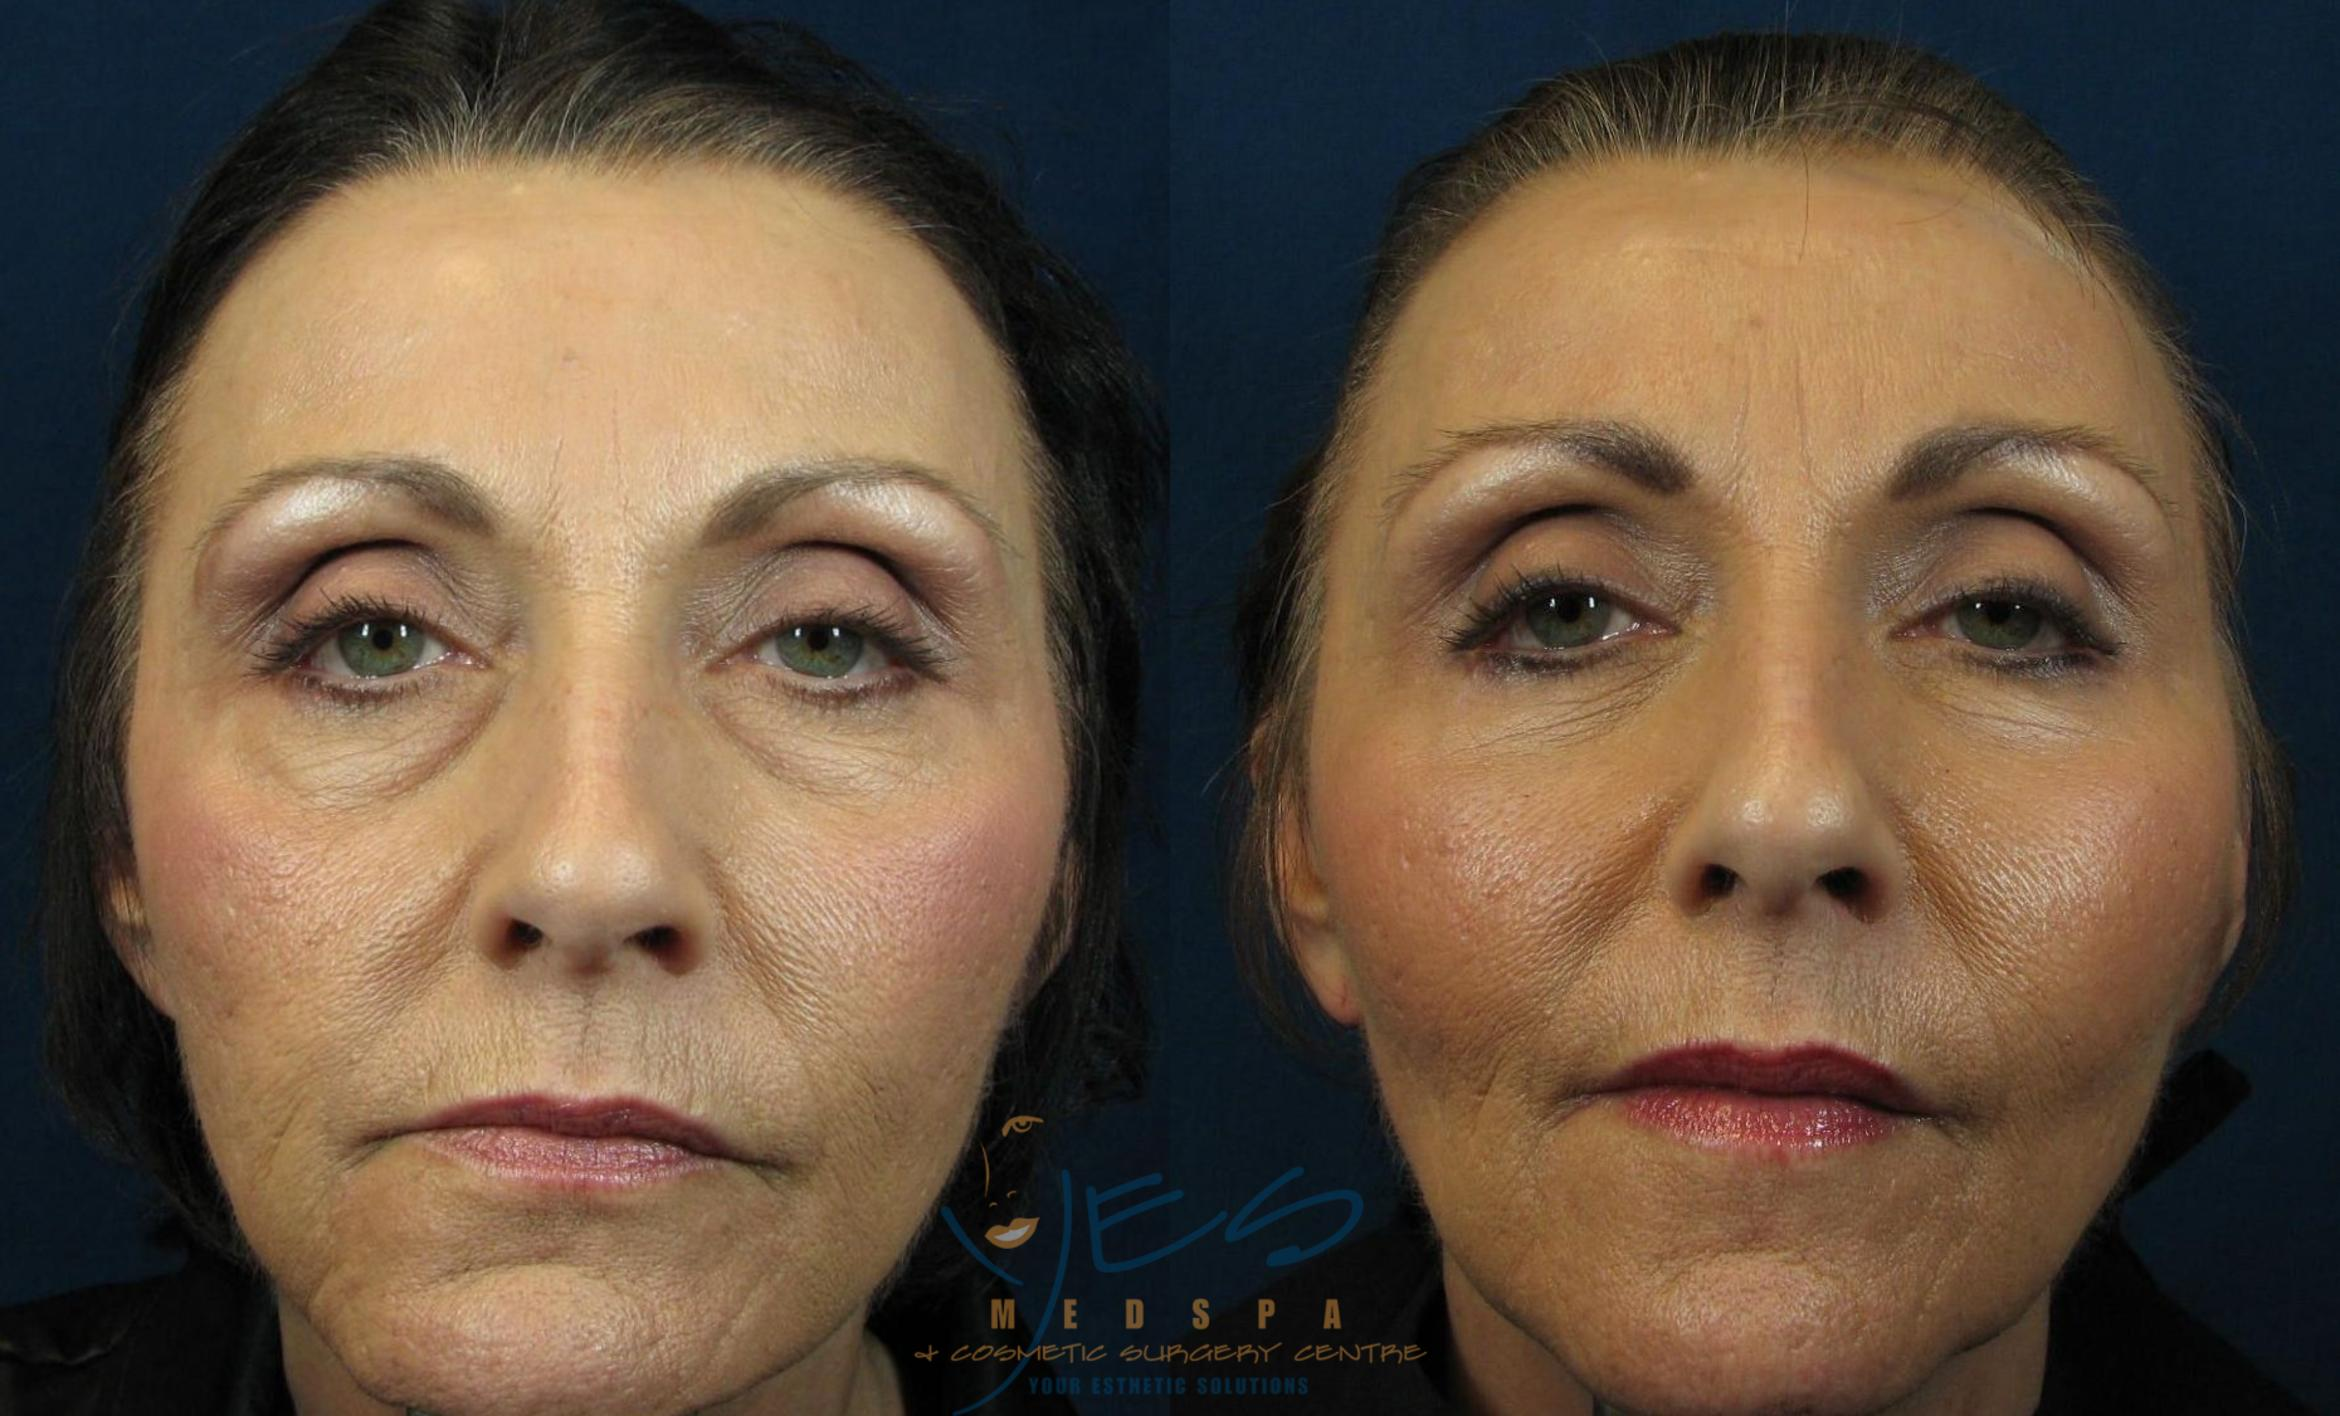 Lower Eyelid Blepharoplasty Before & After Photos Patient ...